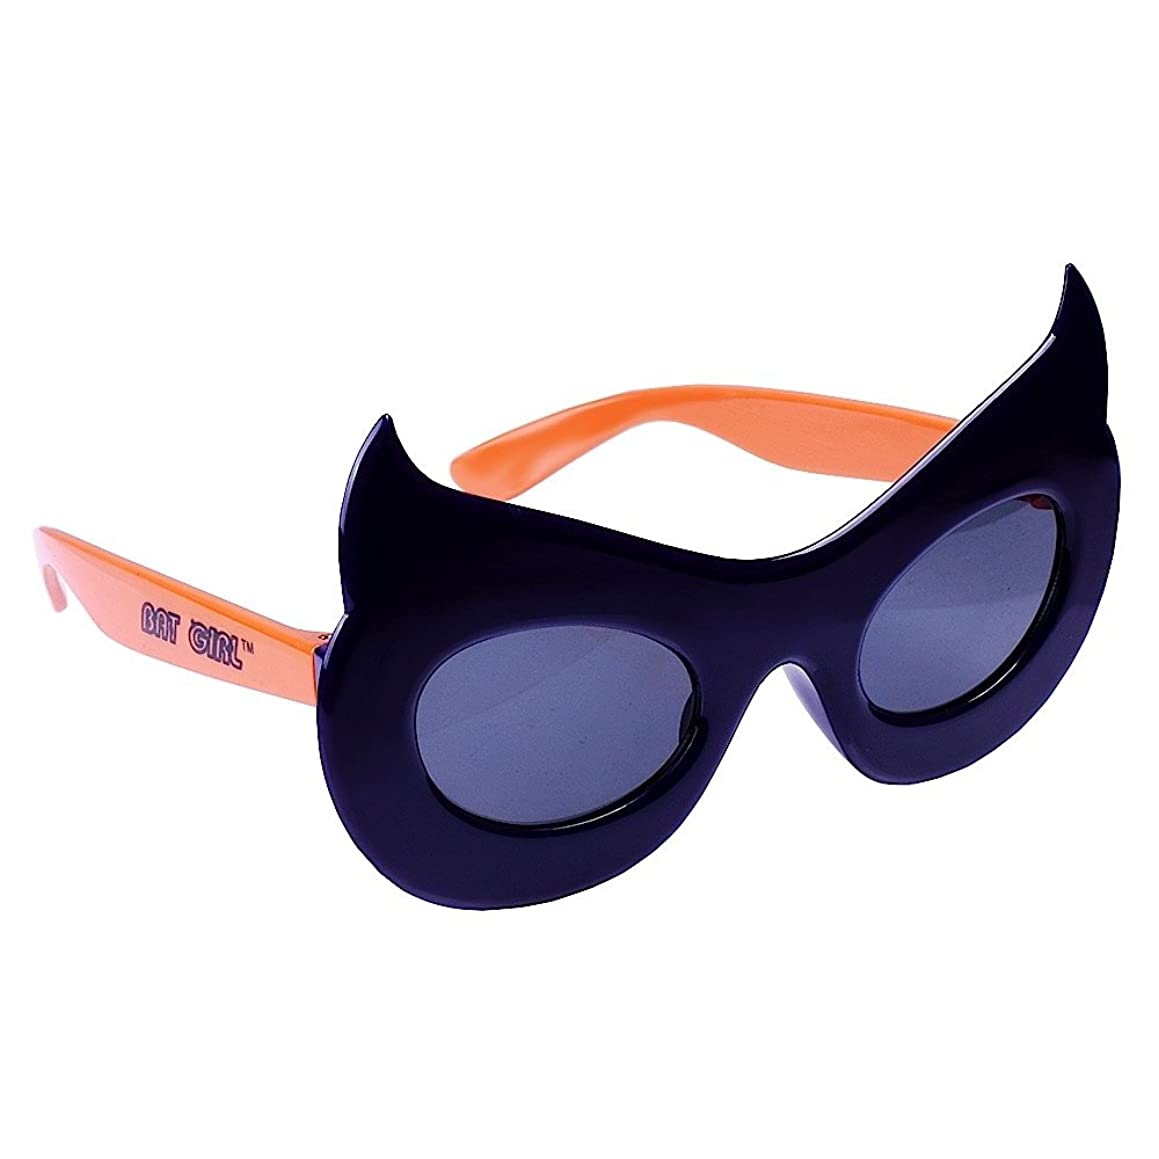 Sun-Staches Costume Sunglasses Lil' Characters Bat Girl Party Favors UV400